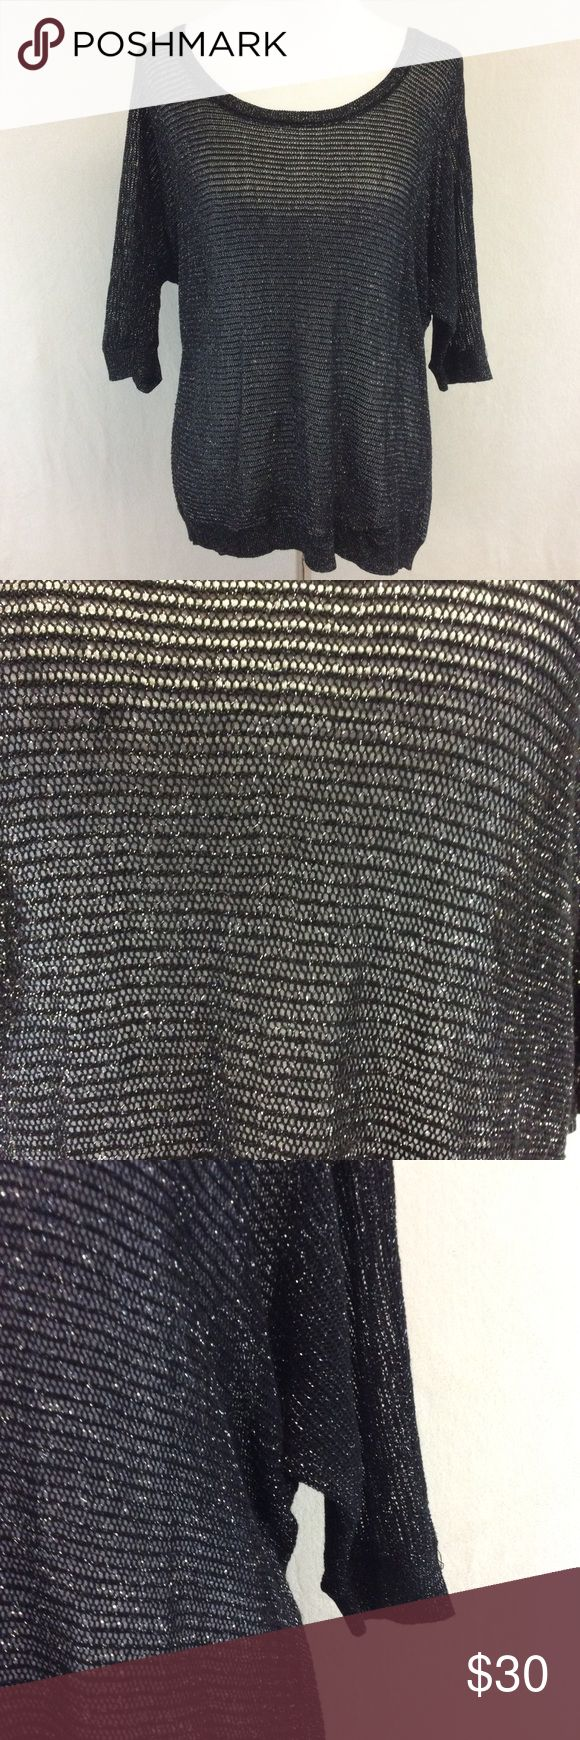 """1X TORRID black shimmering knit sweater Brand: Torrid  Style: scoop neck sweater  Size: 1X Approximate Measurements: pit to pit 21.5"""" shoulder to hem 27"""" Material: 90% rayon 6% polyester 4% metallic Features: shimmering effect, short dolman sleeves  Condition: excellent condition torrid Sweaters"""